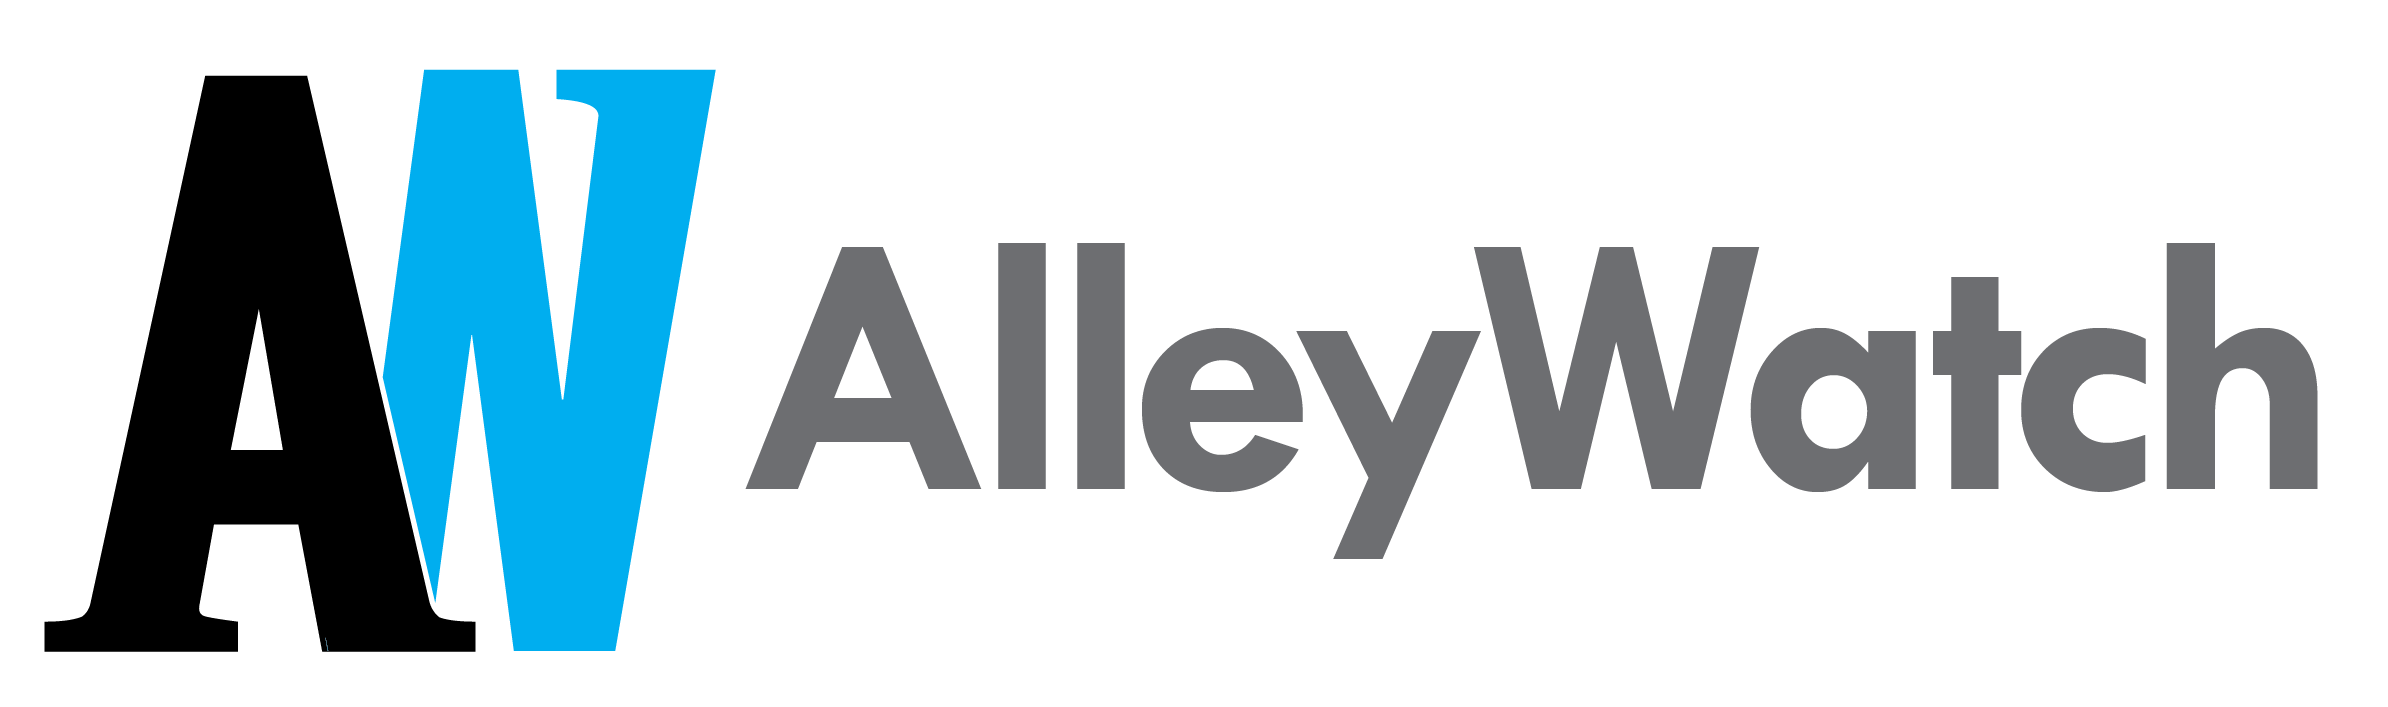 highres_alleywatch_full-01.png